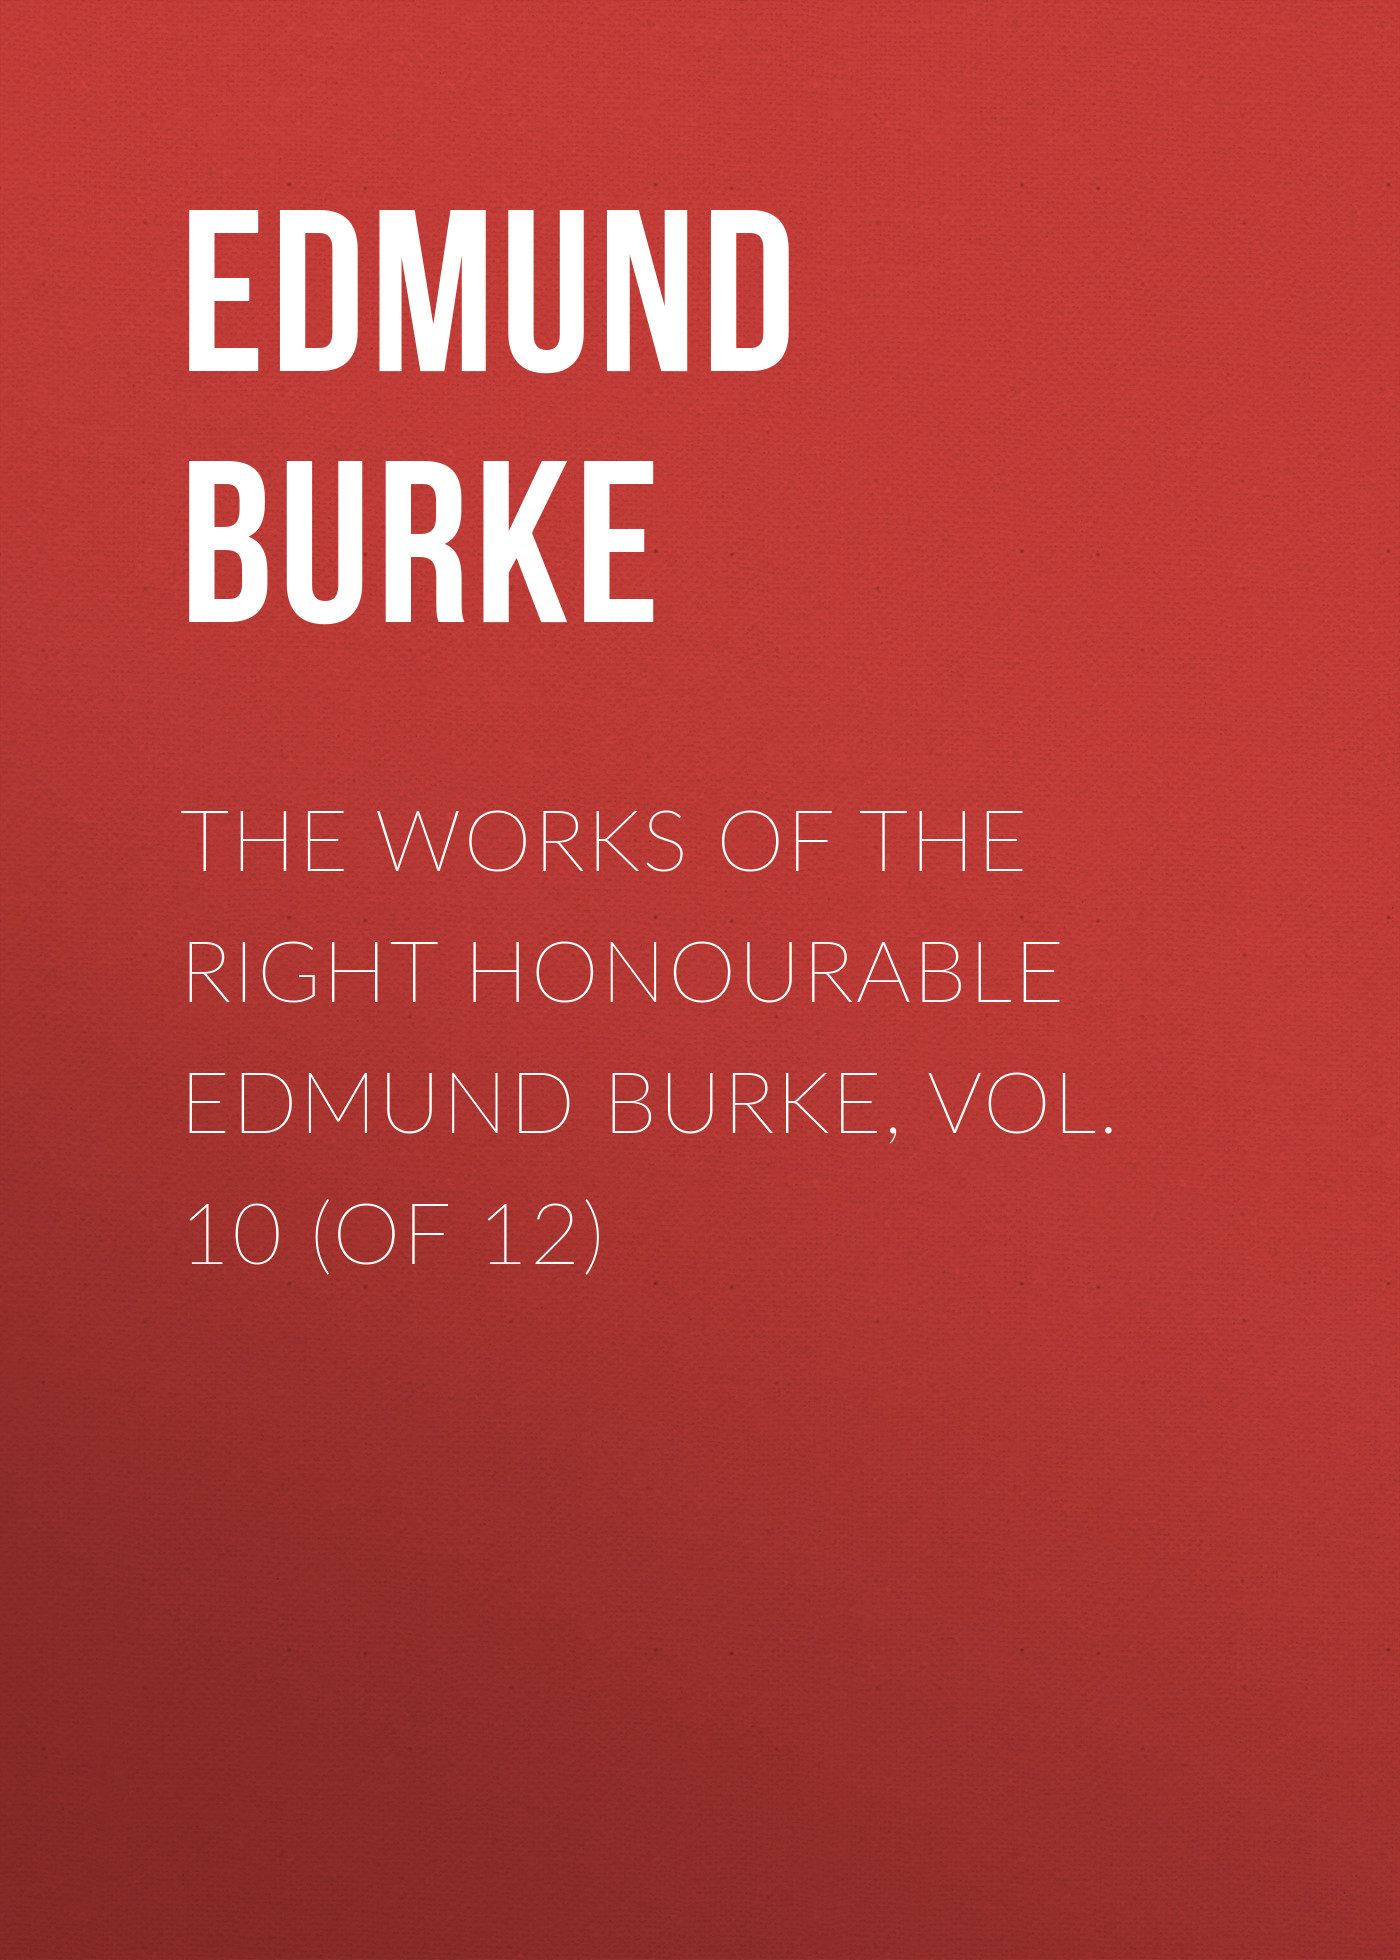 Edmund Burke The Works of the Right Honourable Edmund Burke, Vol. 10 (of 12) mark akenside the poetical works vol 1